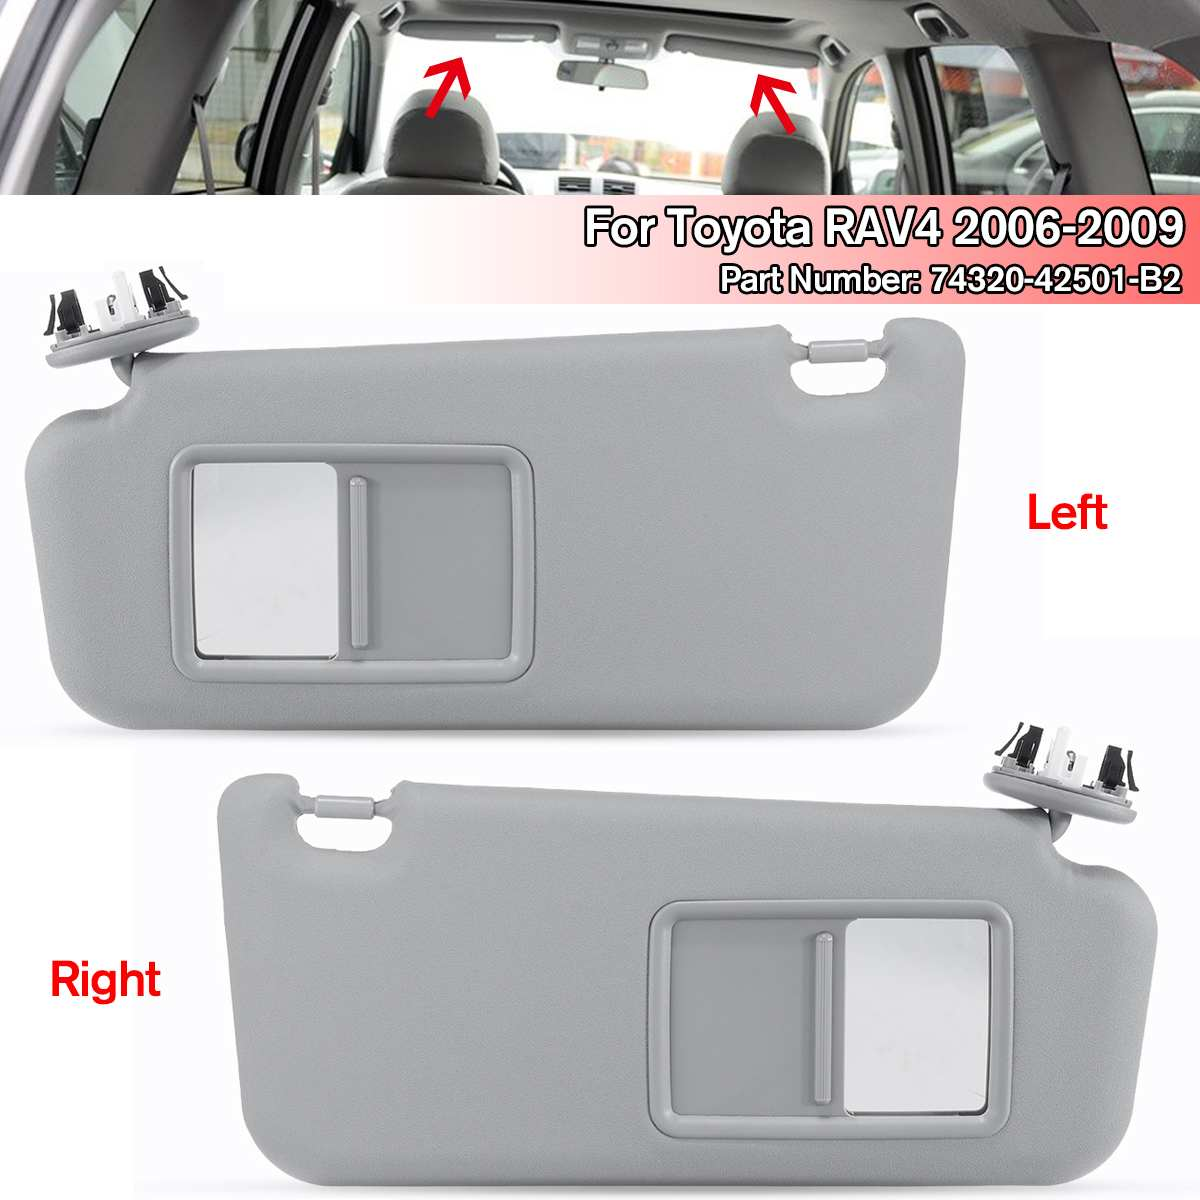 NEW 1PCS Left/Right Car accessories Gray Beige <font><b>Sun</b></font> Visor with Make-up Mirror and Screws For Toyota RAV4 2006-2009 74320-42501-A1 image